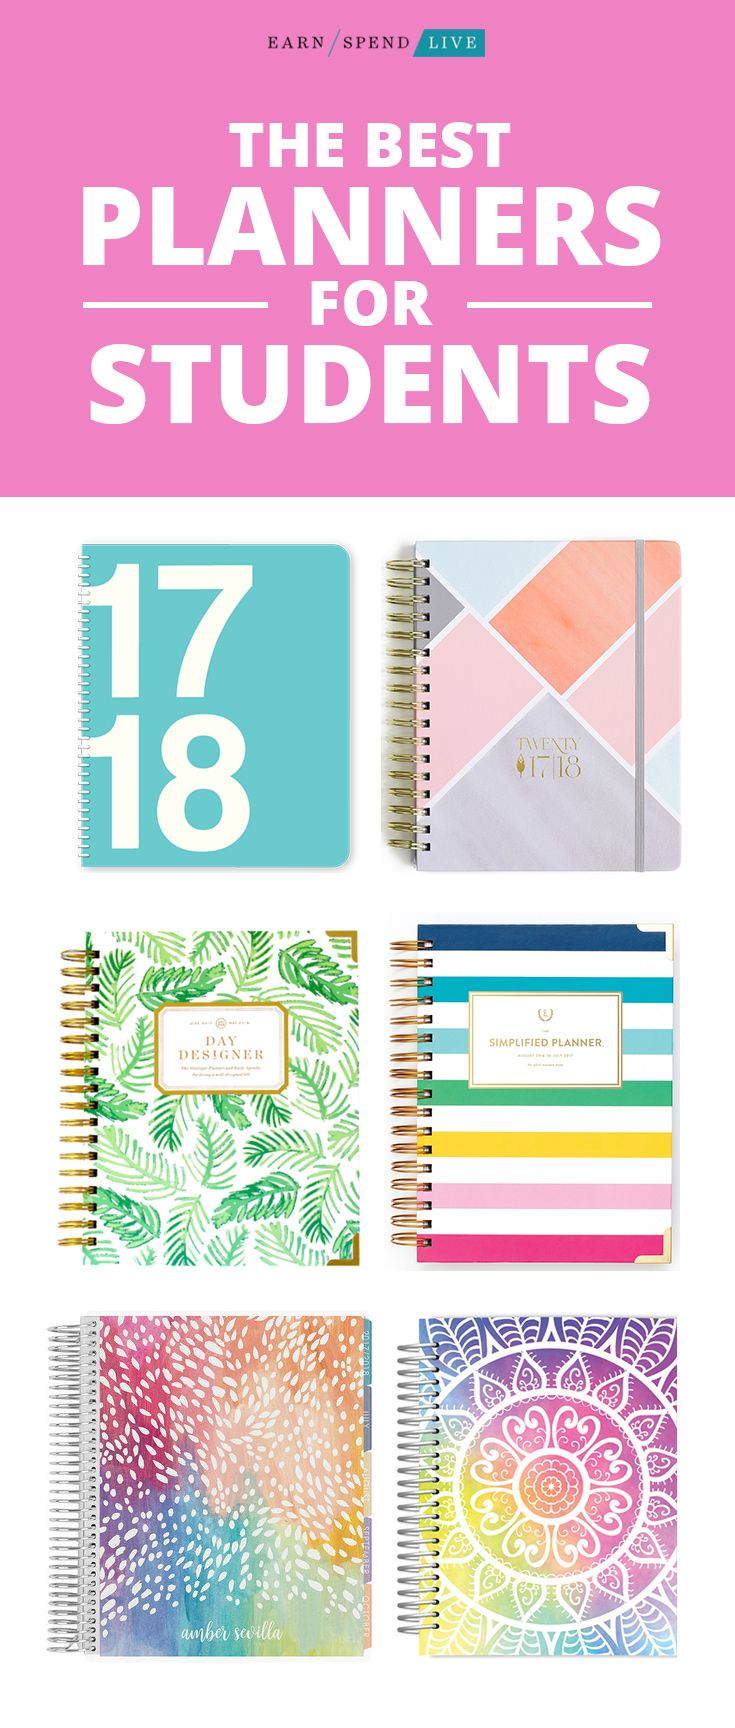 Best Planner for Students of All Ages, Best Planners for College Students, Best Planners for High School Students, Day Designer Planner, The Simplified Planner, Erin Condren Academic Planner